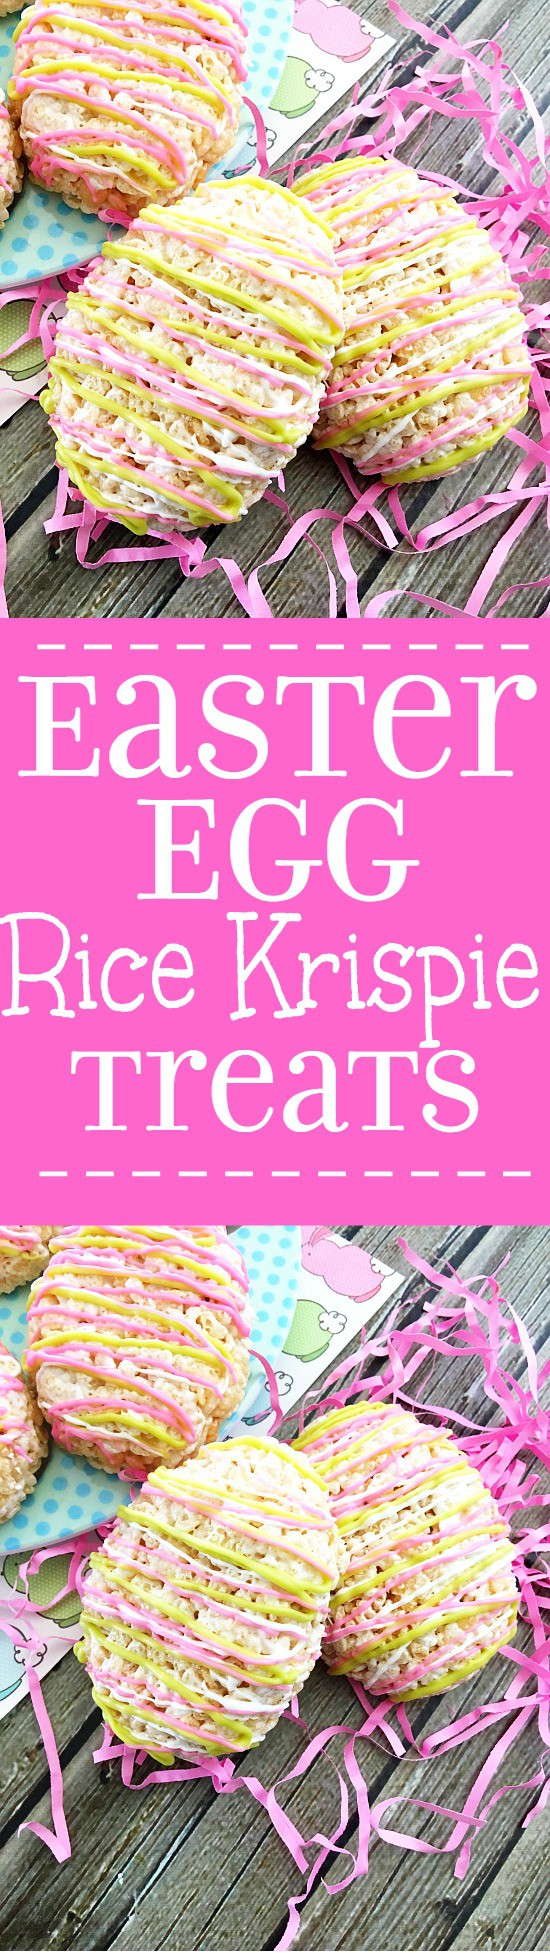 Easter Egg Rice Krispie Treats - Cute, bright Easter Egg Rice Krispie Treats are a fun and easy no bake Easter dessert recipe that can be made in just 20 minutes. The kids will love these!